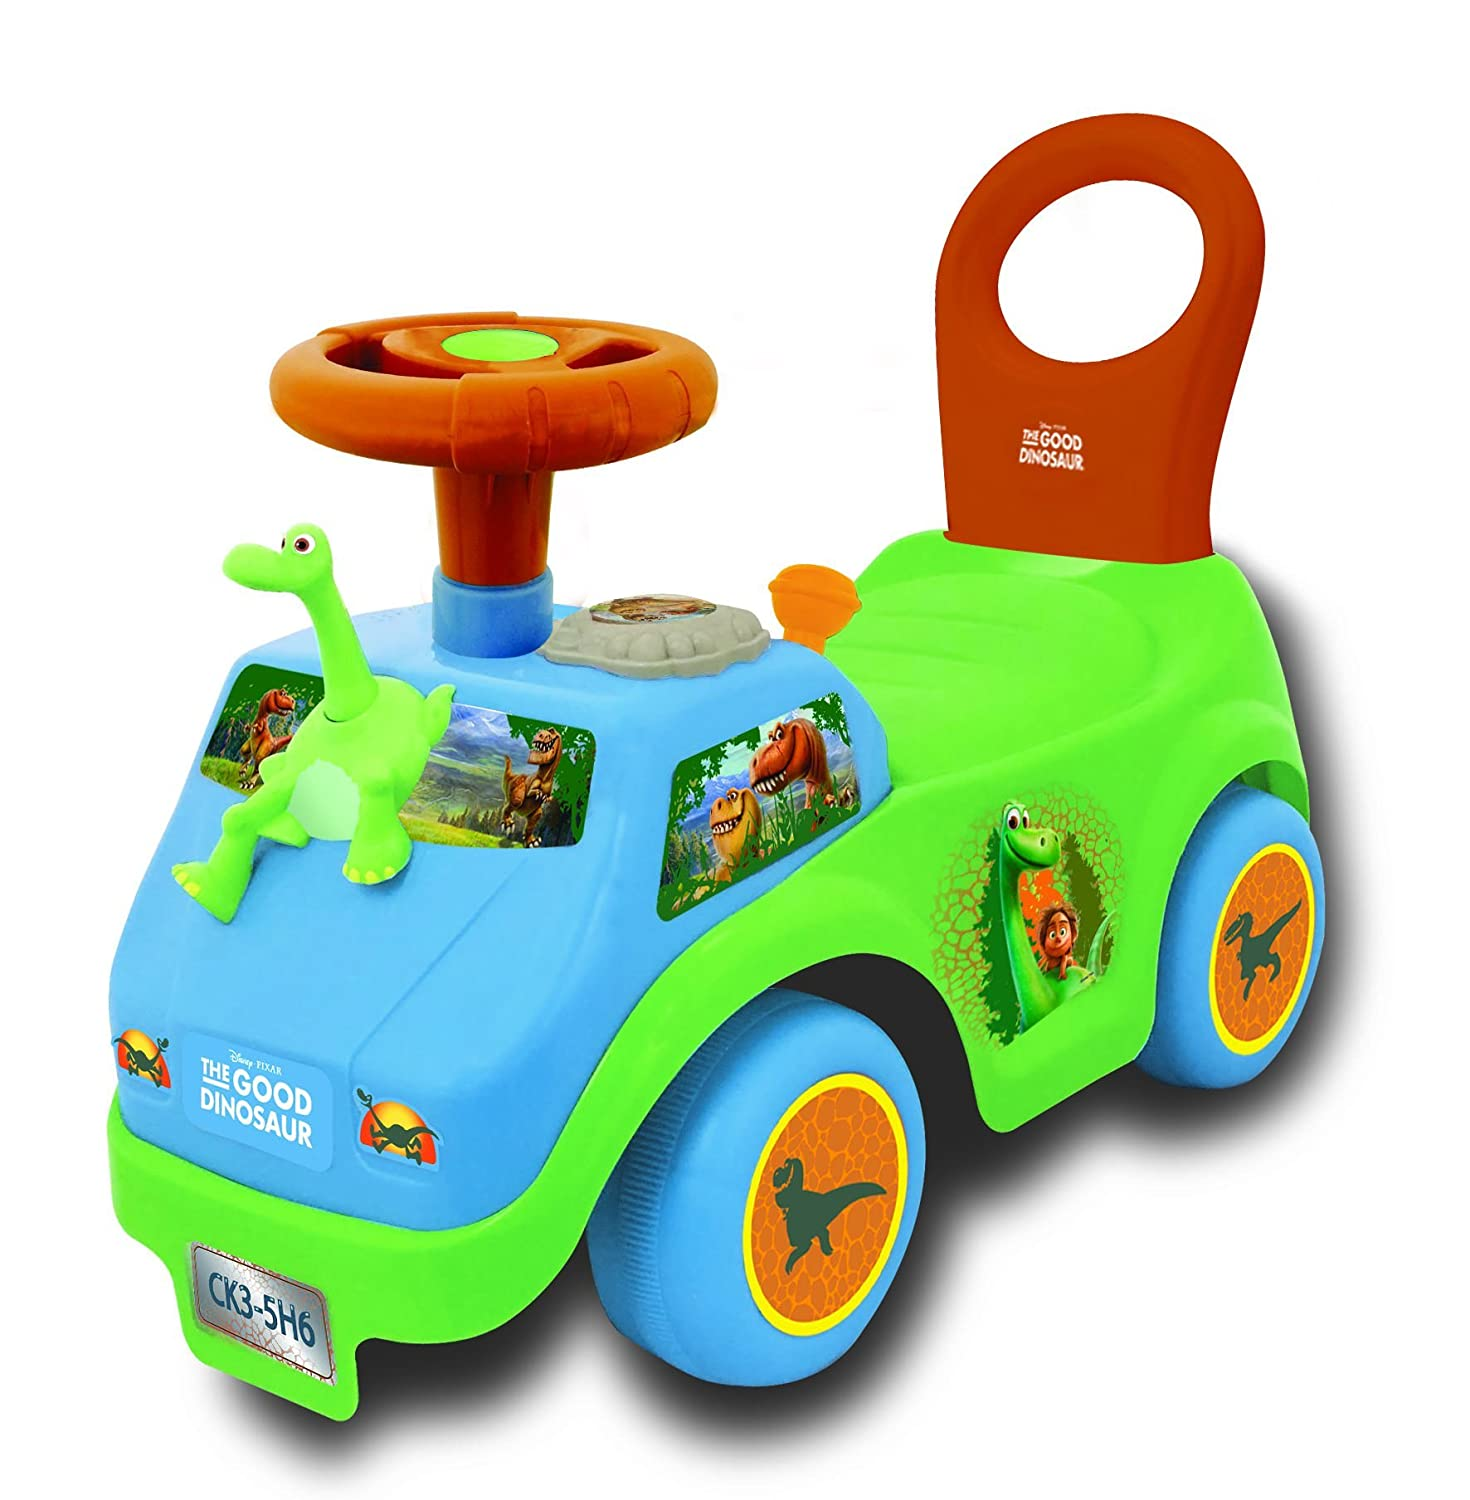 Good Toys For Toddlers : Amazing good toys for kids pics children ideas